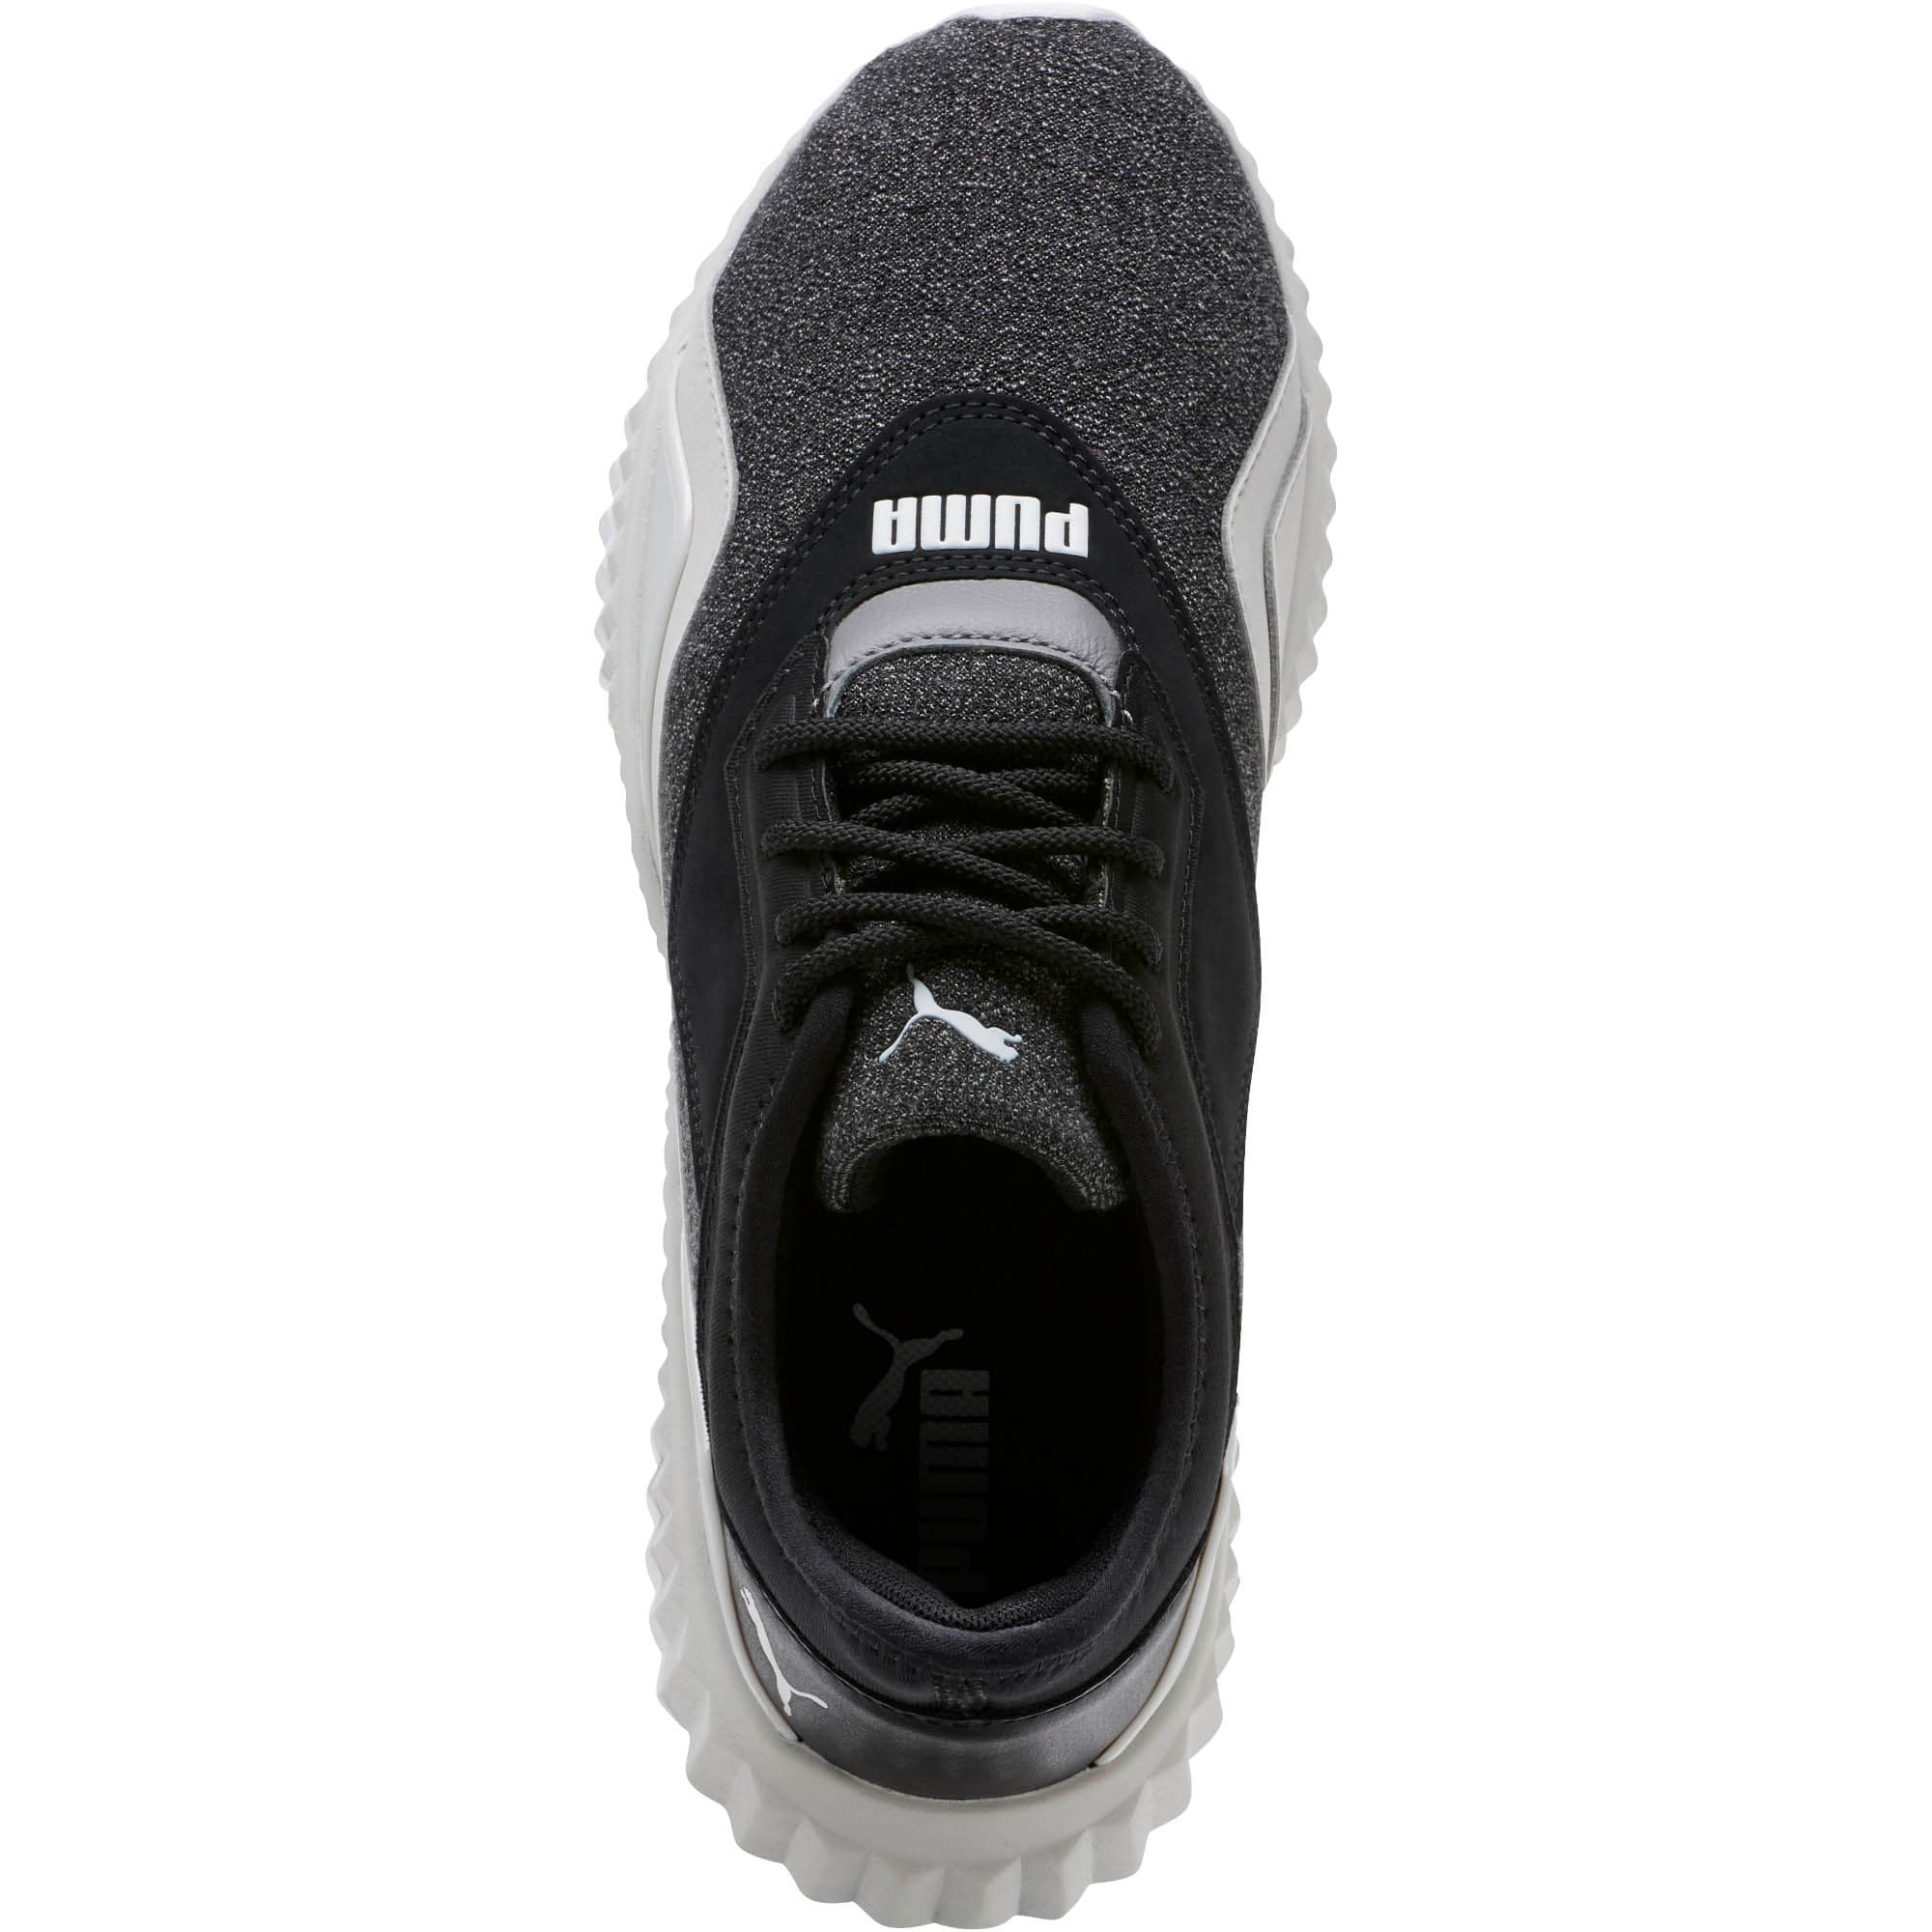 Thumbnail 5 of Defy Stitched Z Women's Training Shoes, Puma Black-Glacier Gray, medium